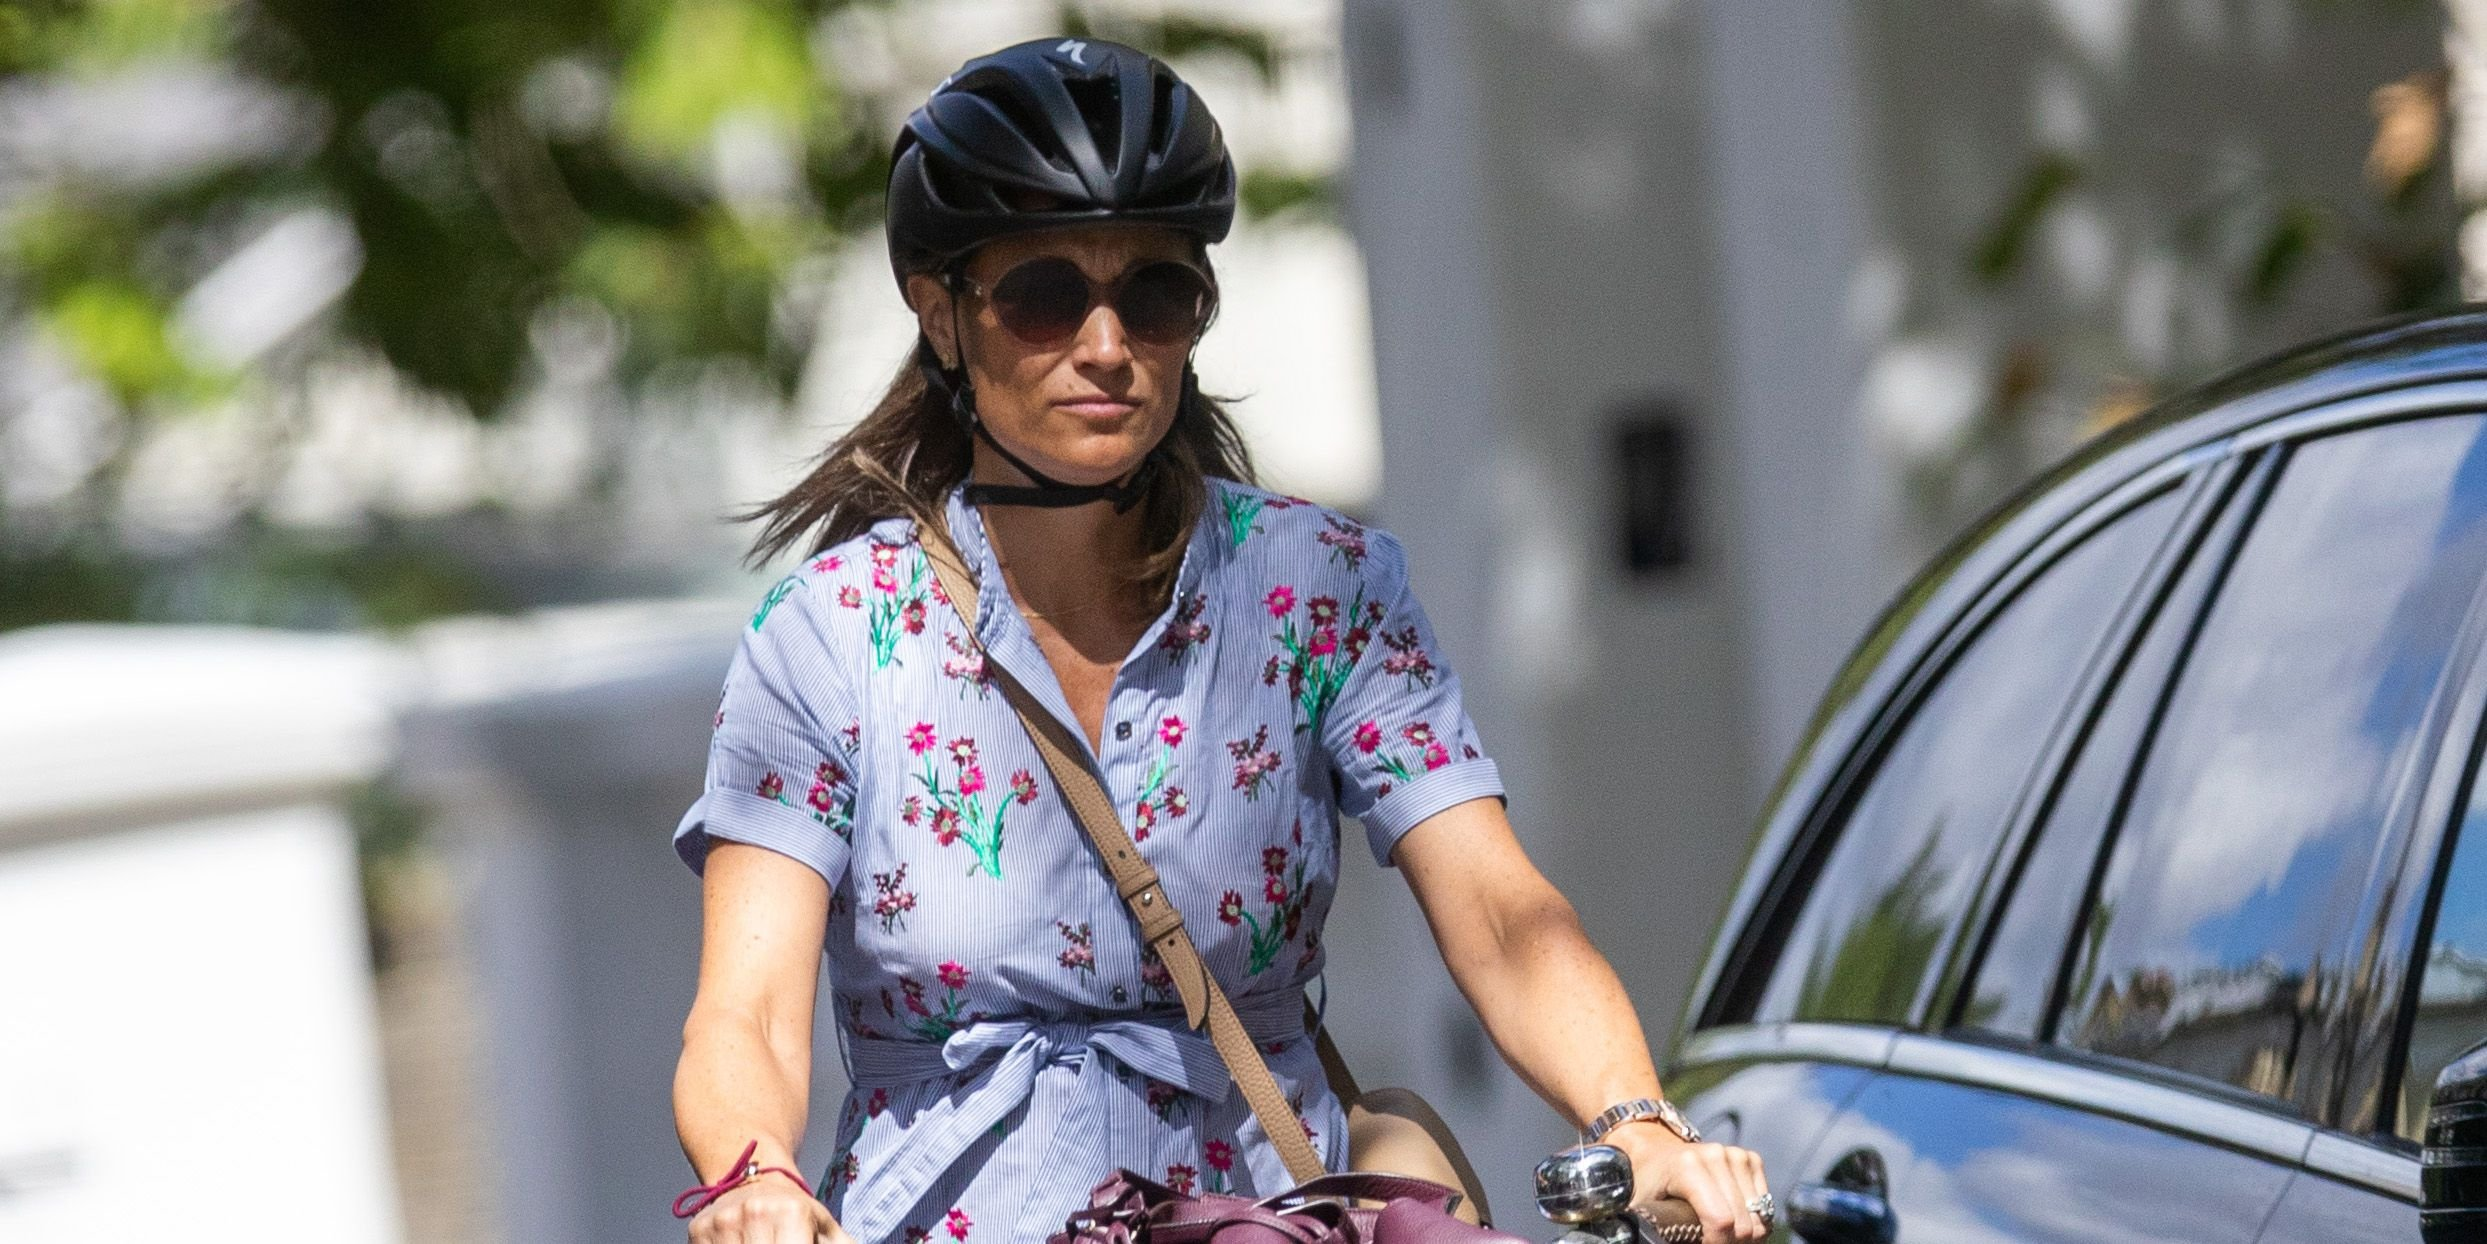 4158f758a4 Pippa Middleton Wraps Up Her Baby Bump in Florals for a Bike Ride ...